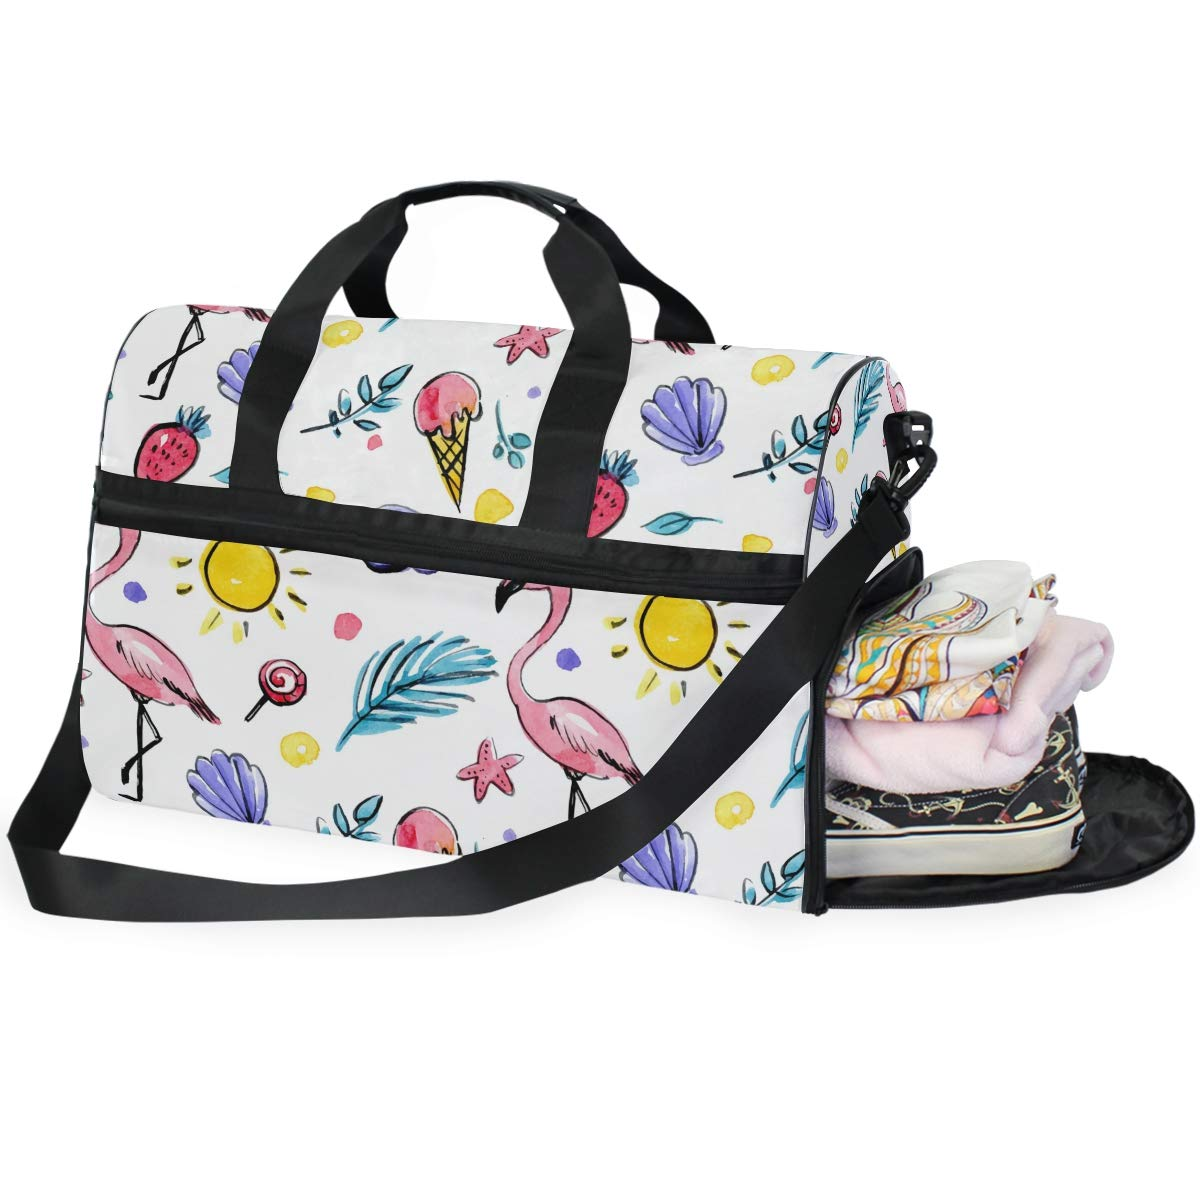 Vacation Travel Duffel Bag Flamingos Waterproof Lightweight Luggage bag for Sports Gym